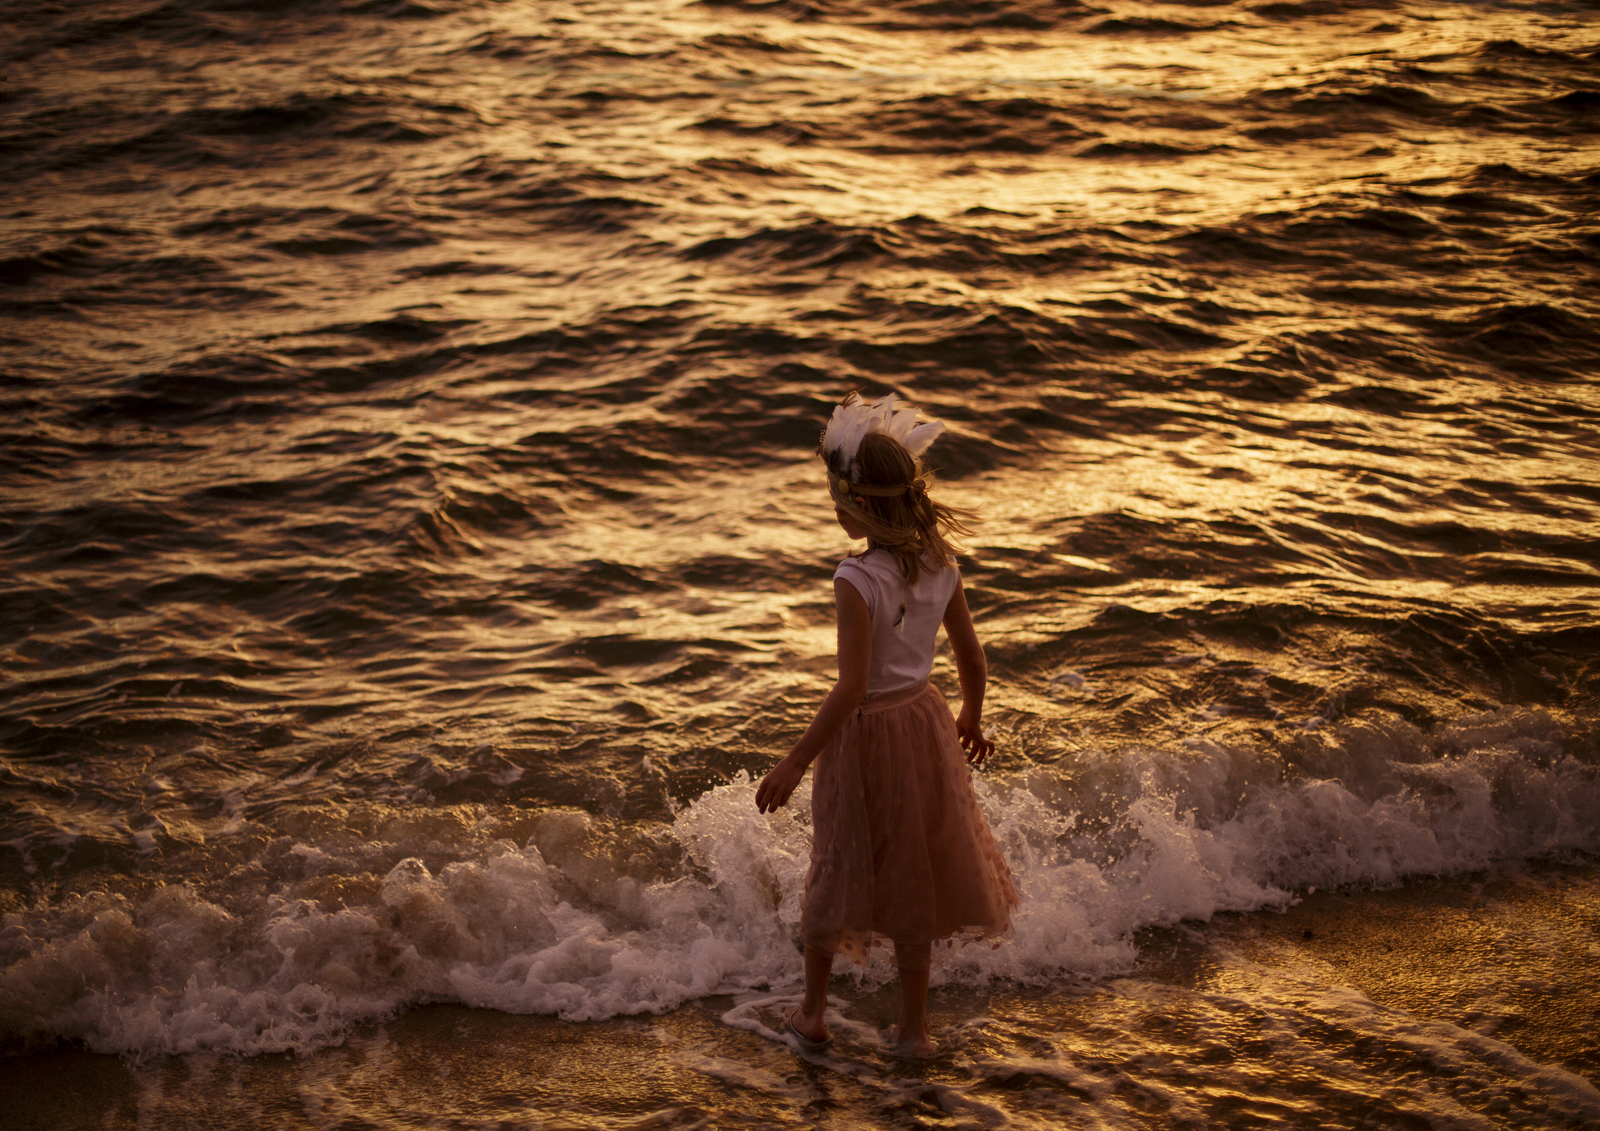 Child in the water with waves